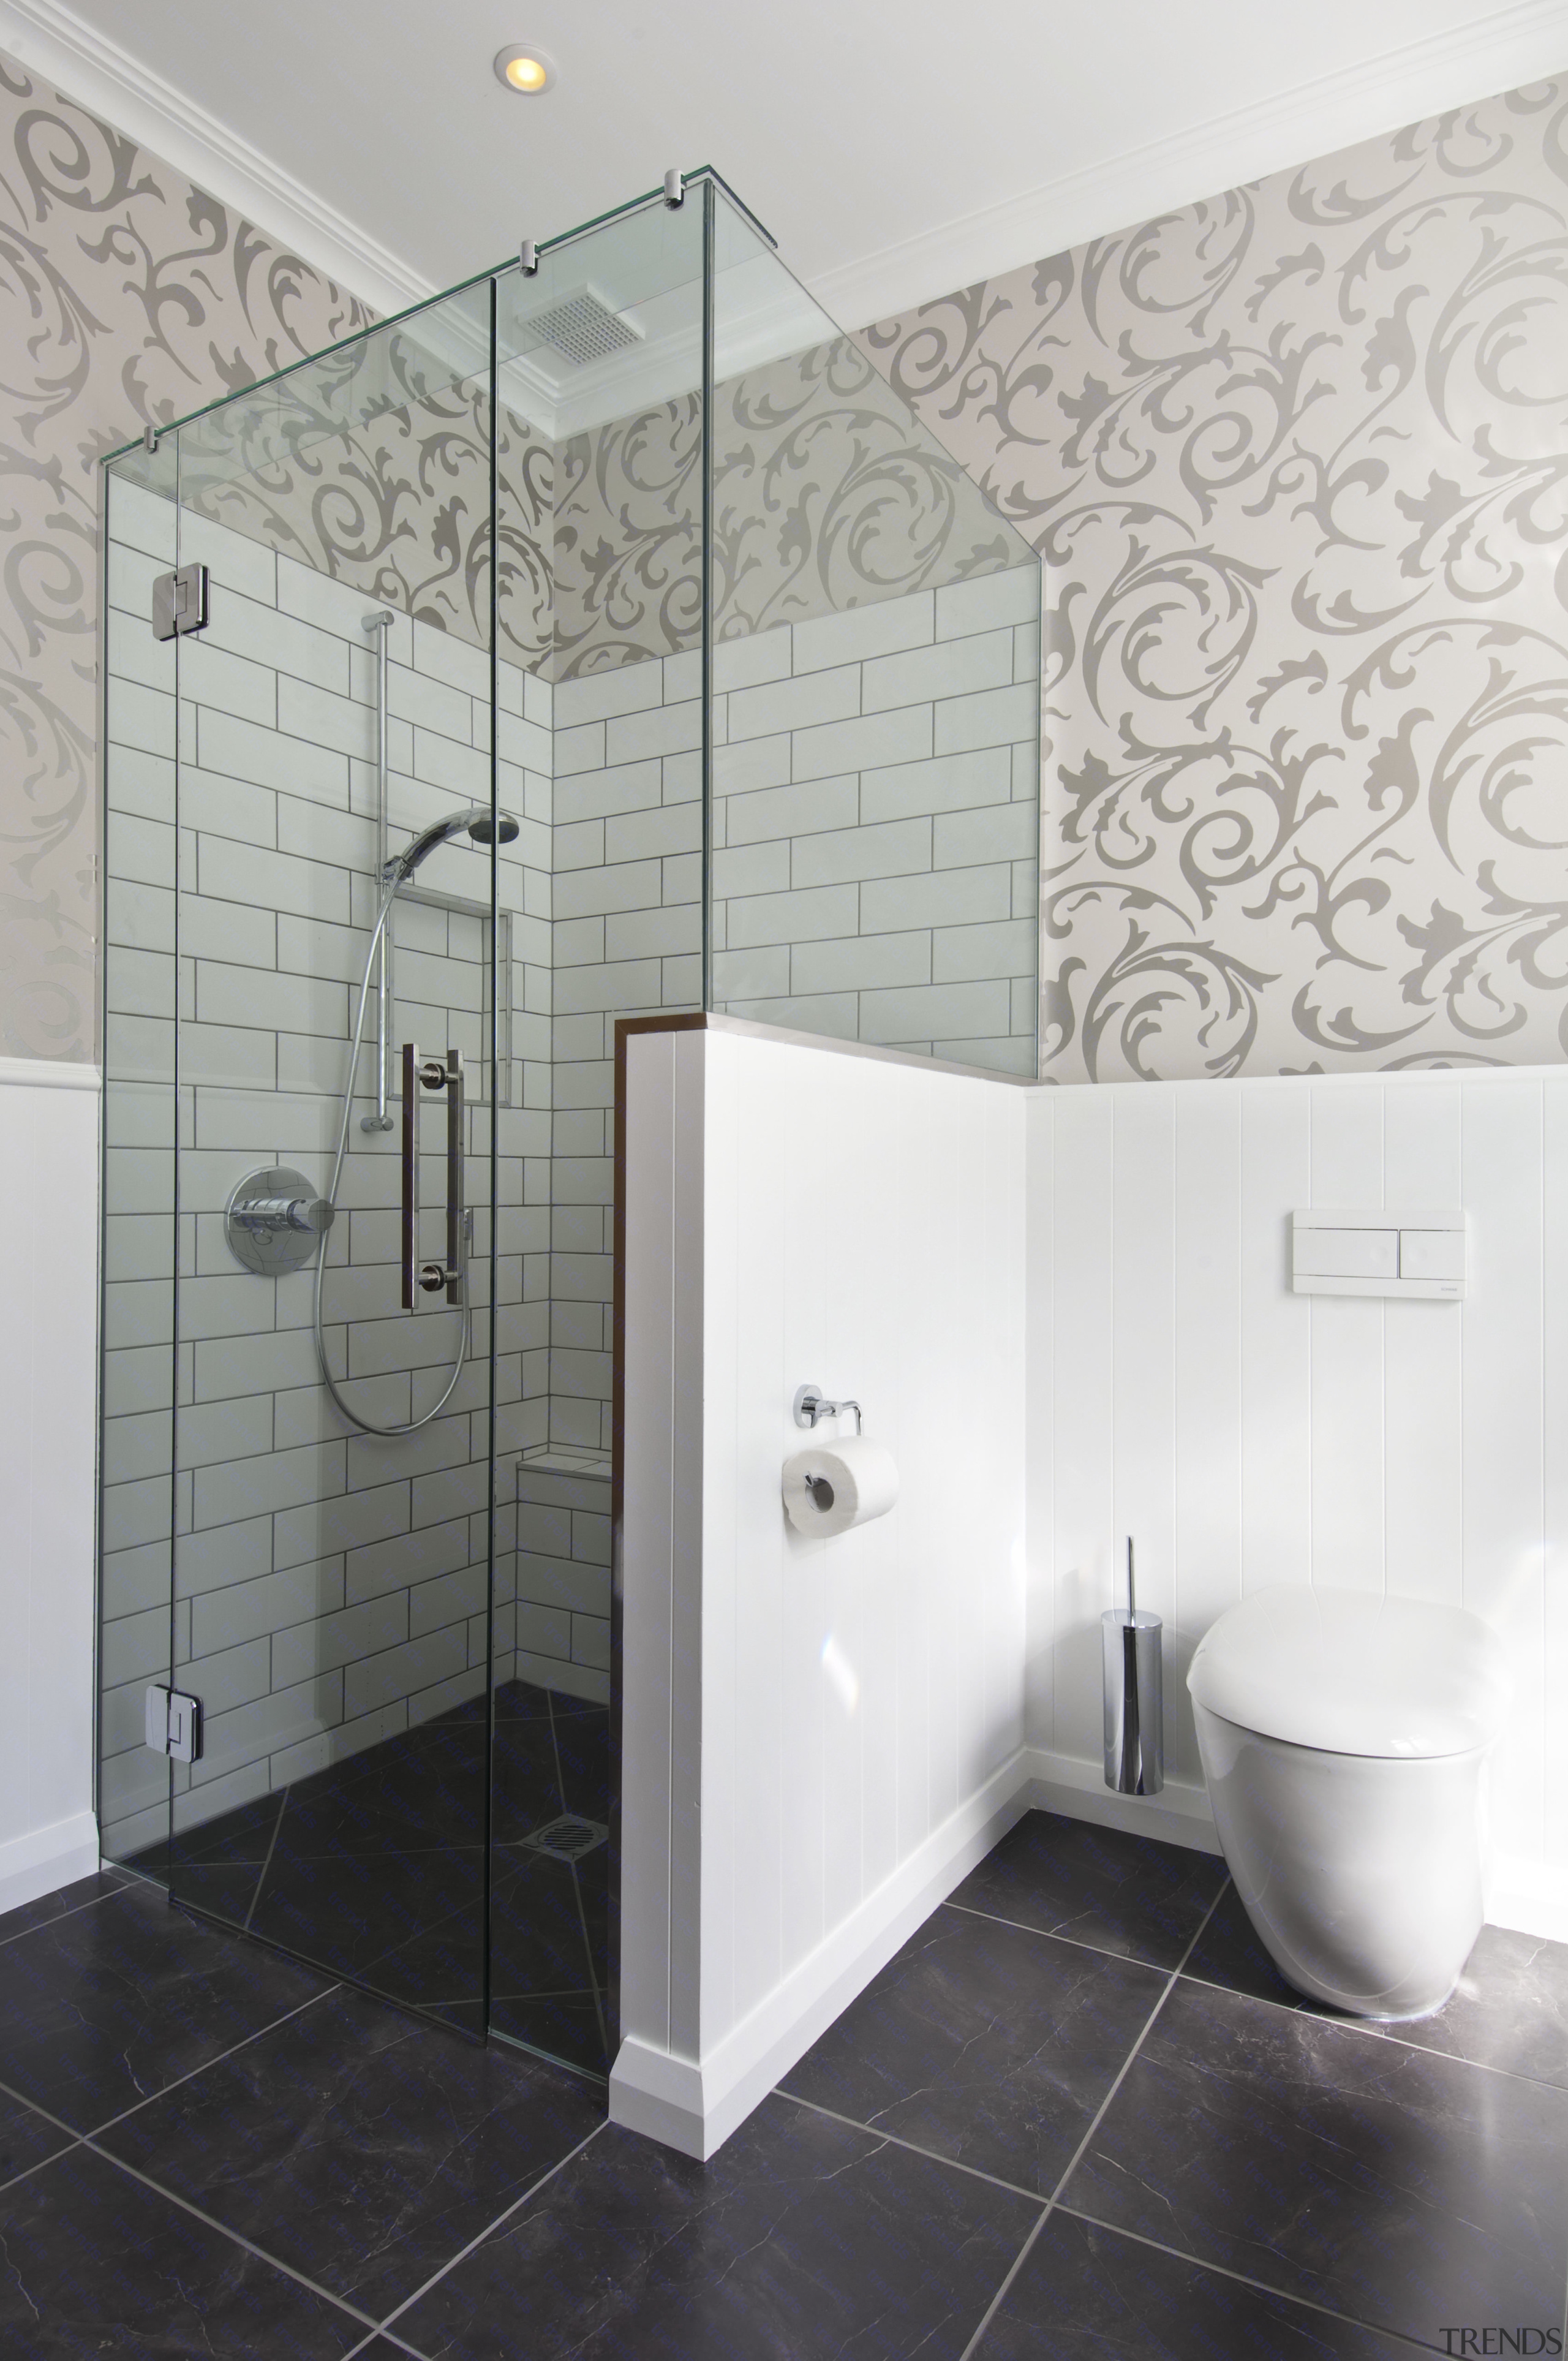 Trends] | View of bathroom in a 1930s bungalow designed by Debra ...